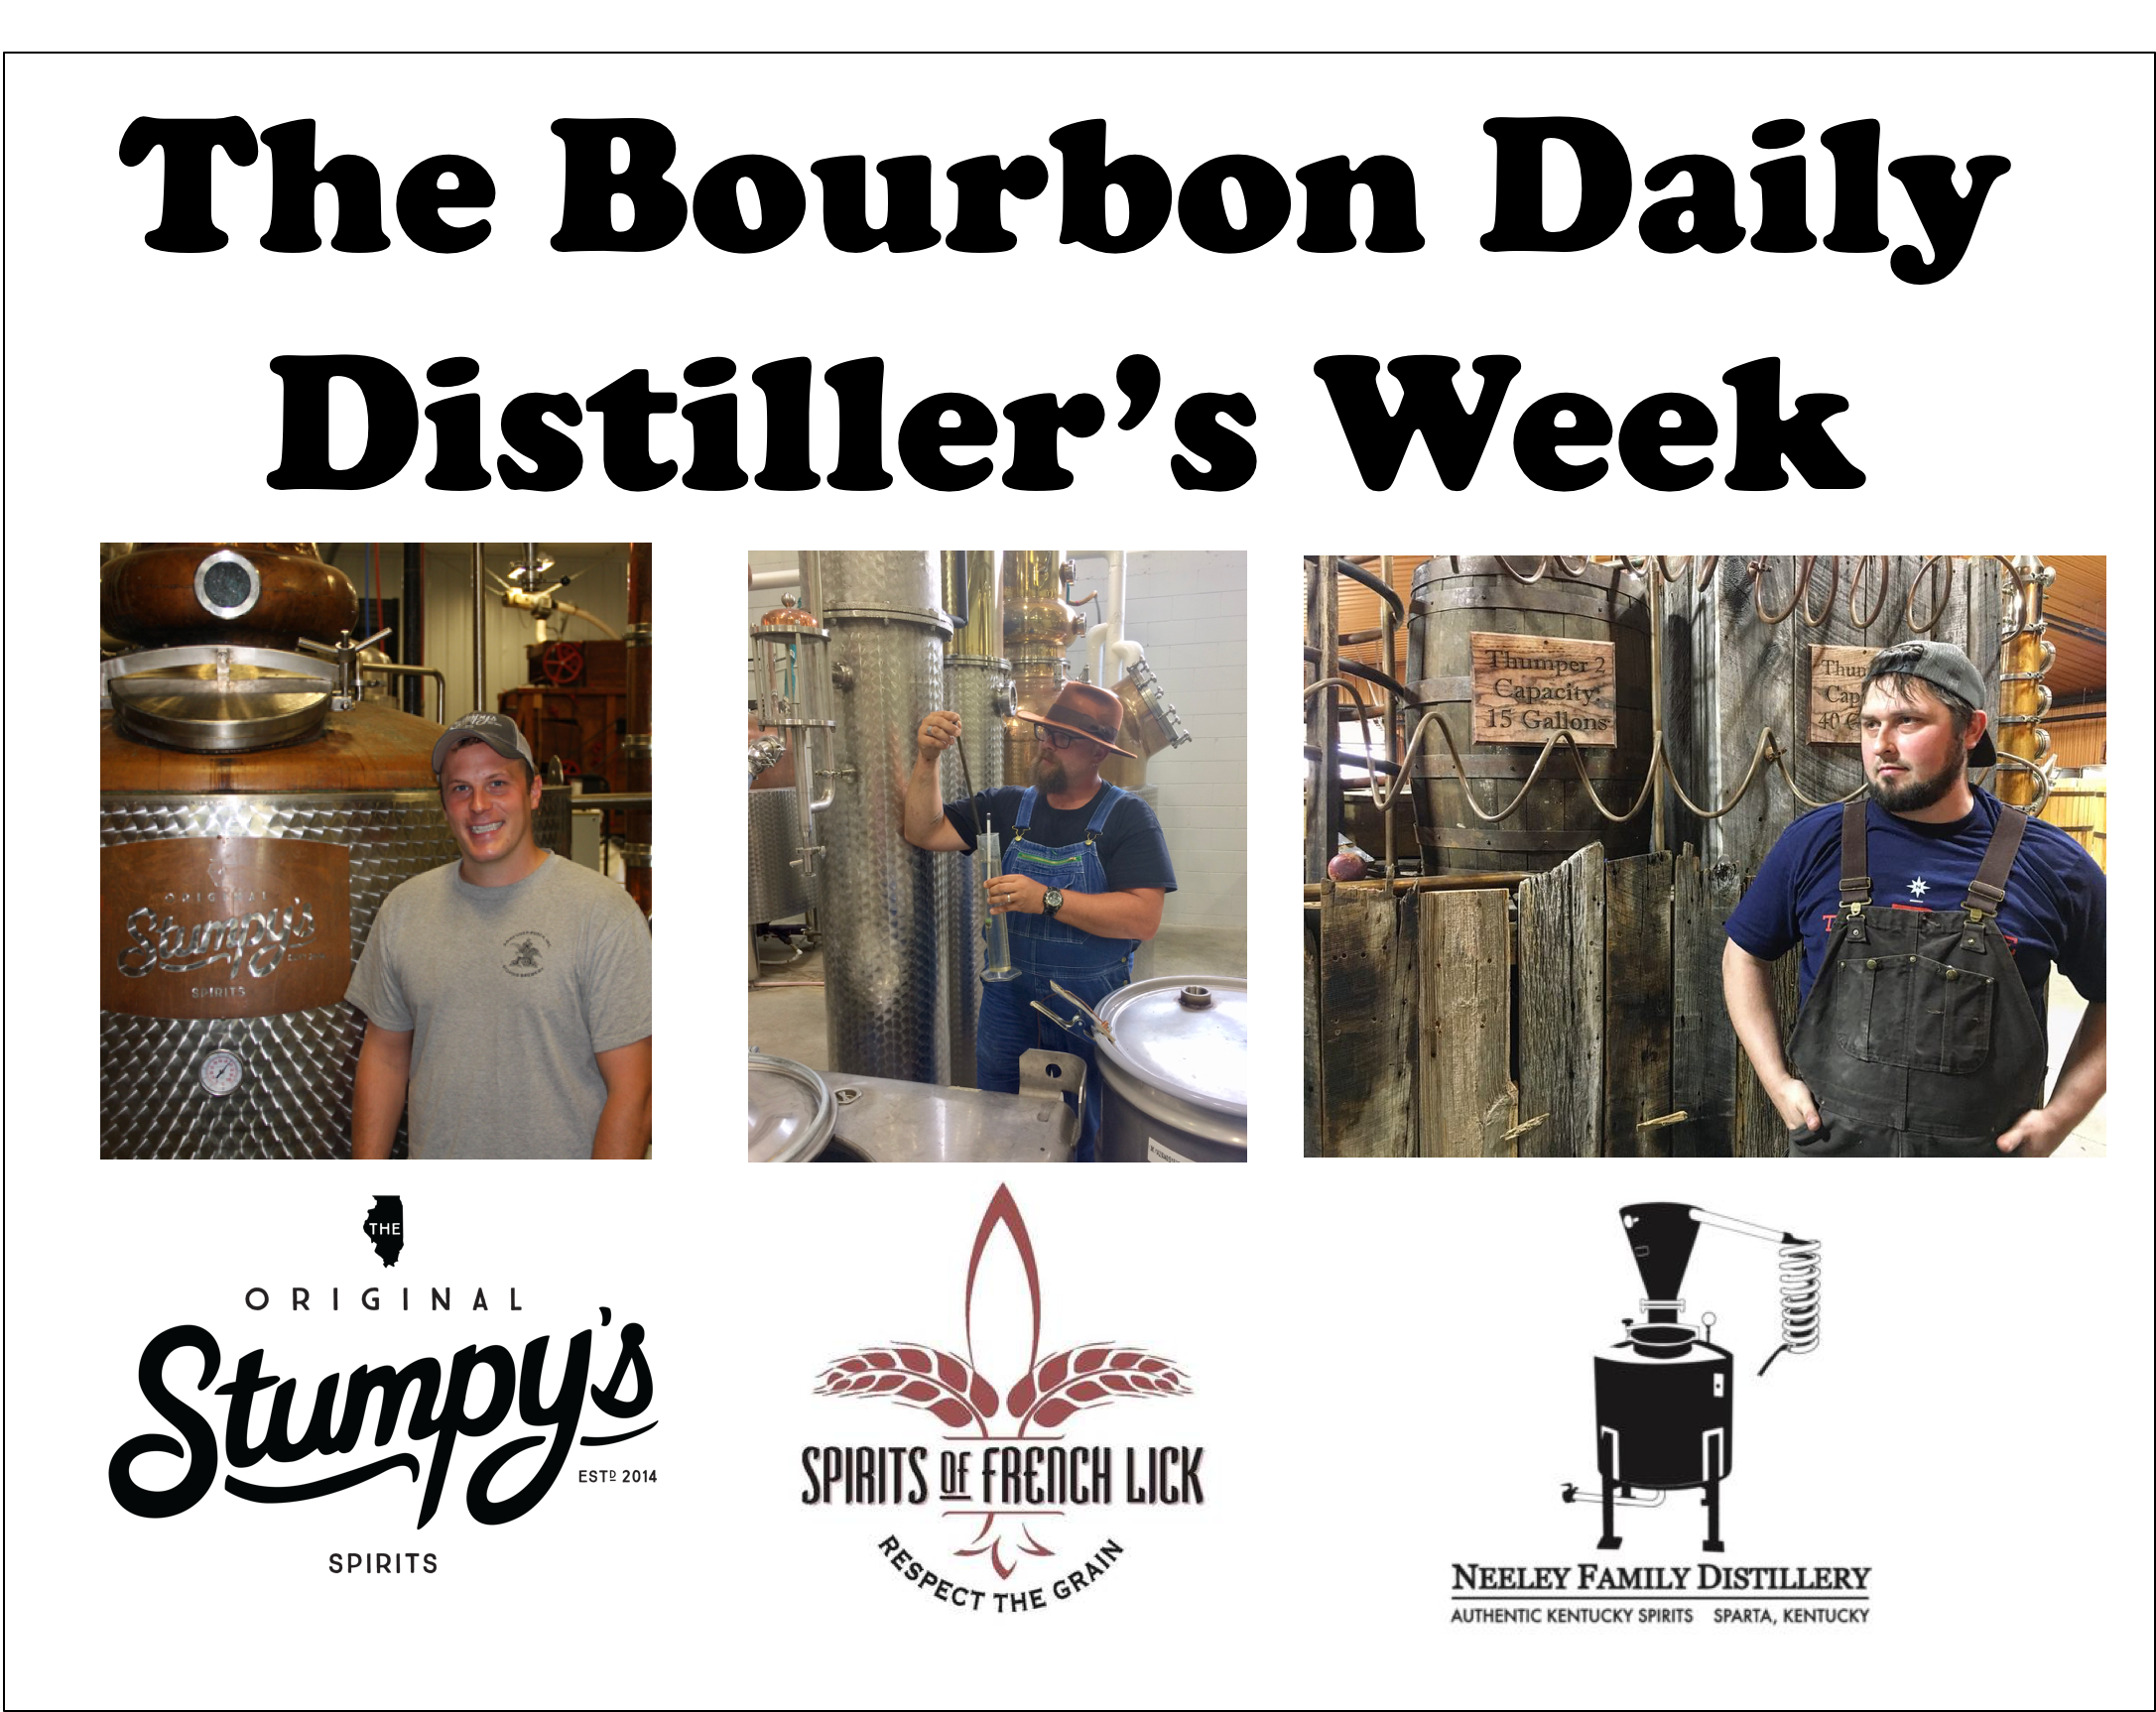 Recently on The Bourbon Daily, we did a series of shows on distillers that gave some real insight into the job.